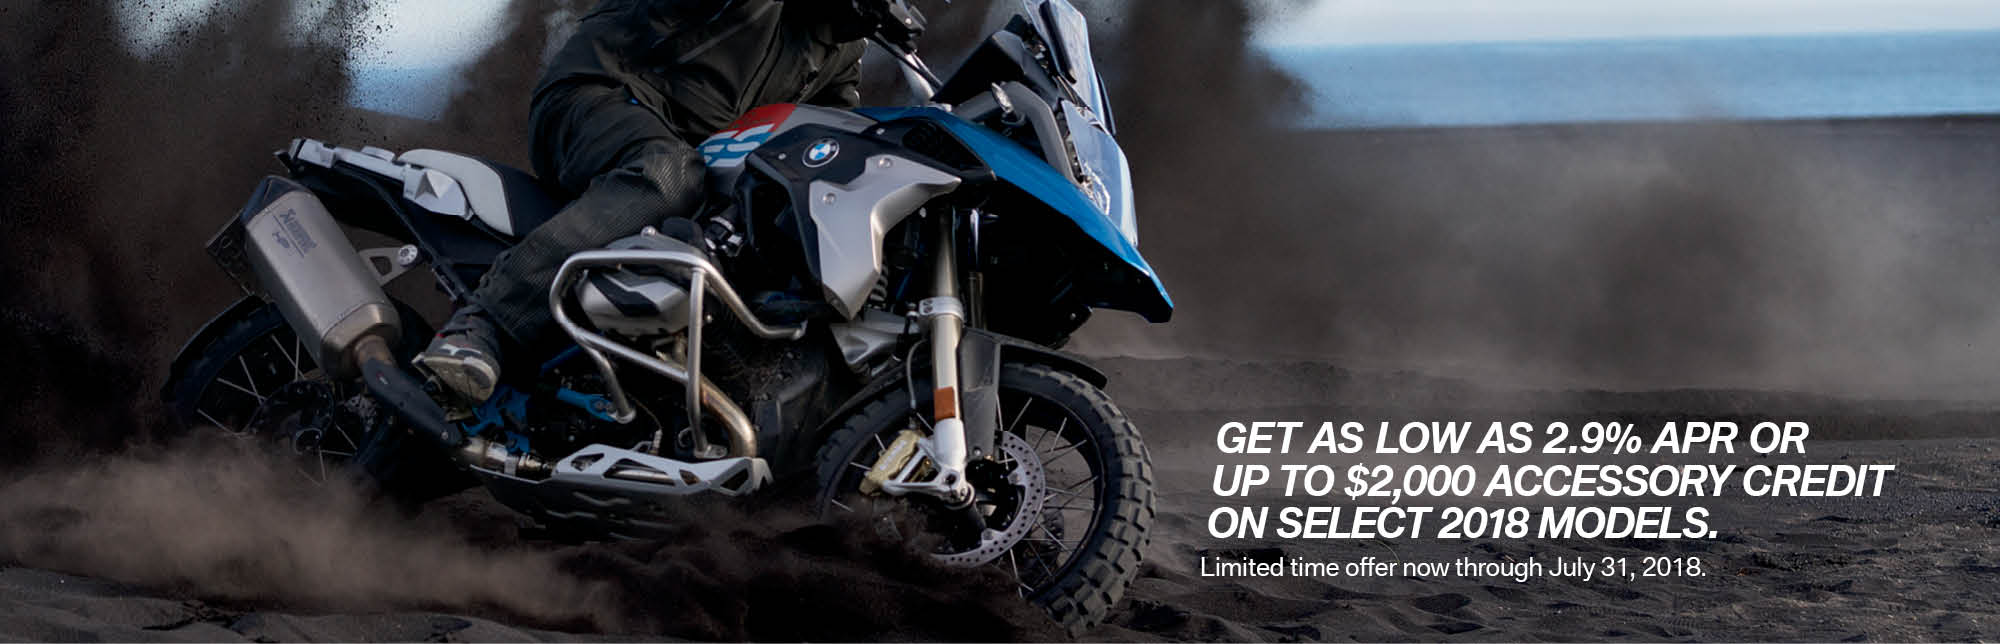 BMW June Promotion - as low as 2.9% APR, or up to $2500 off